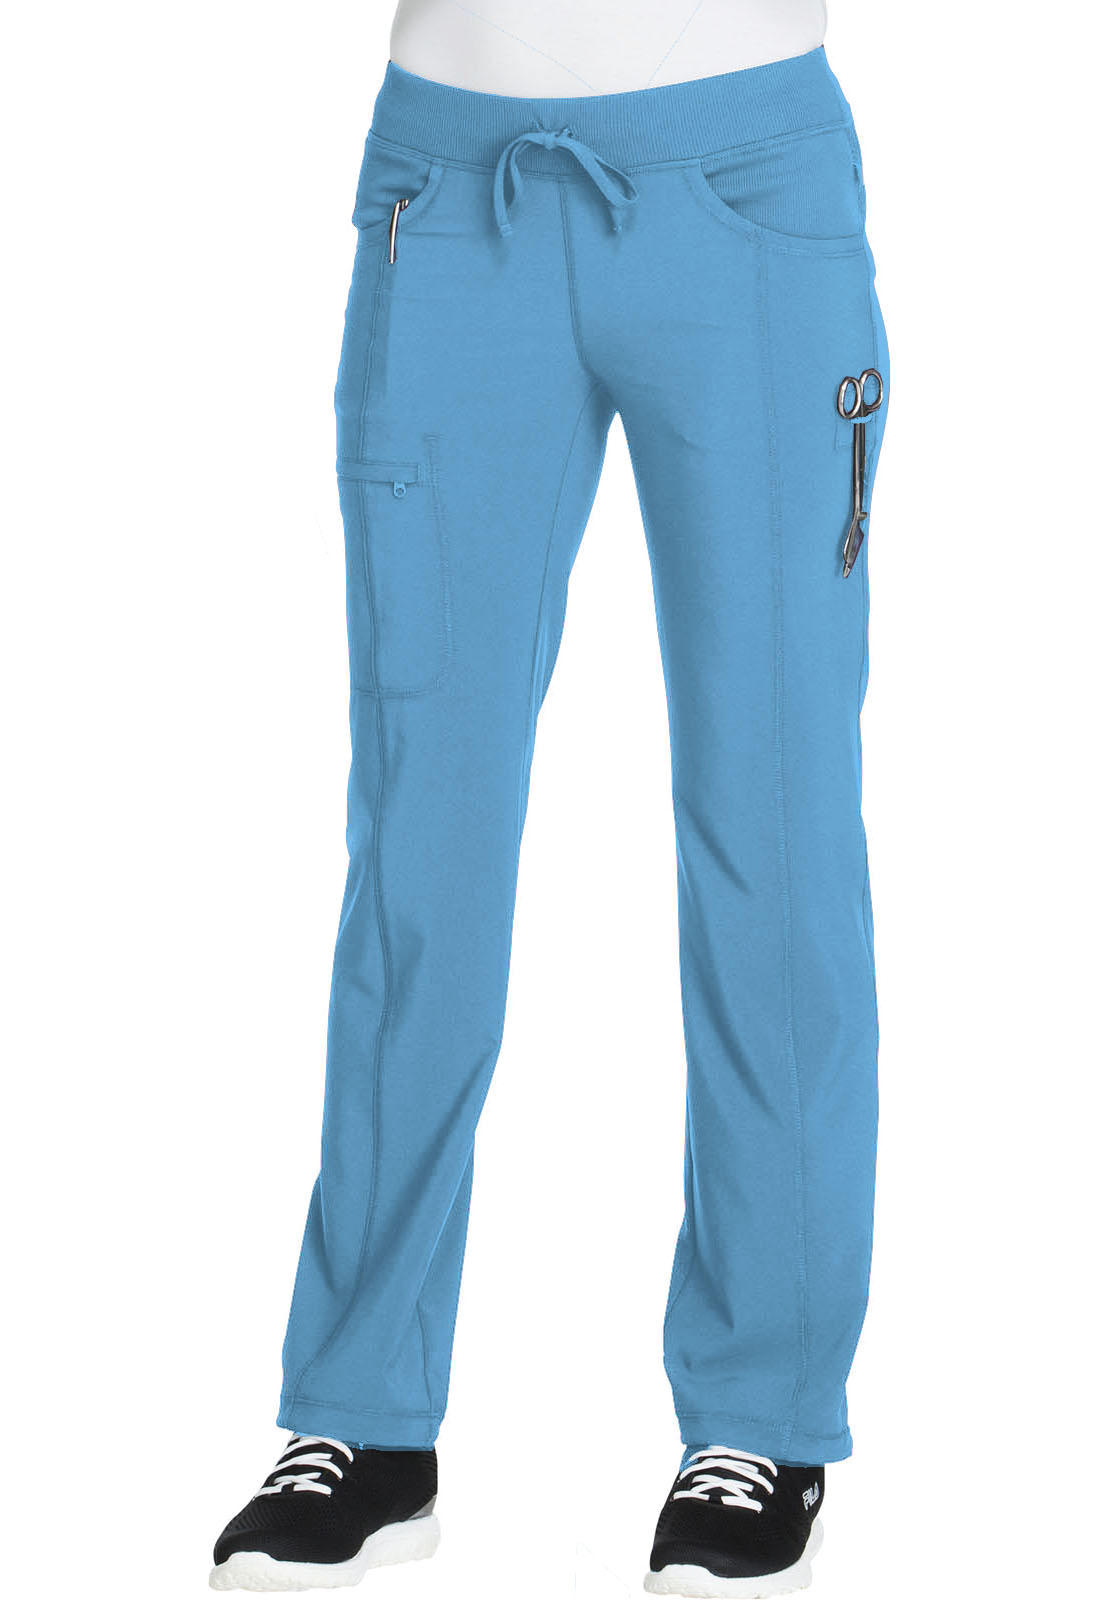 821ea068ad0 Infinity Low Rise Straight Leg Drawstring Pant in Turquoise (Antimicrobial)